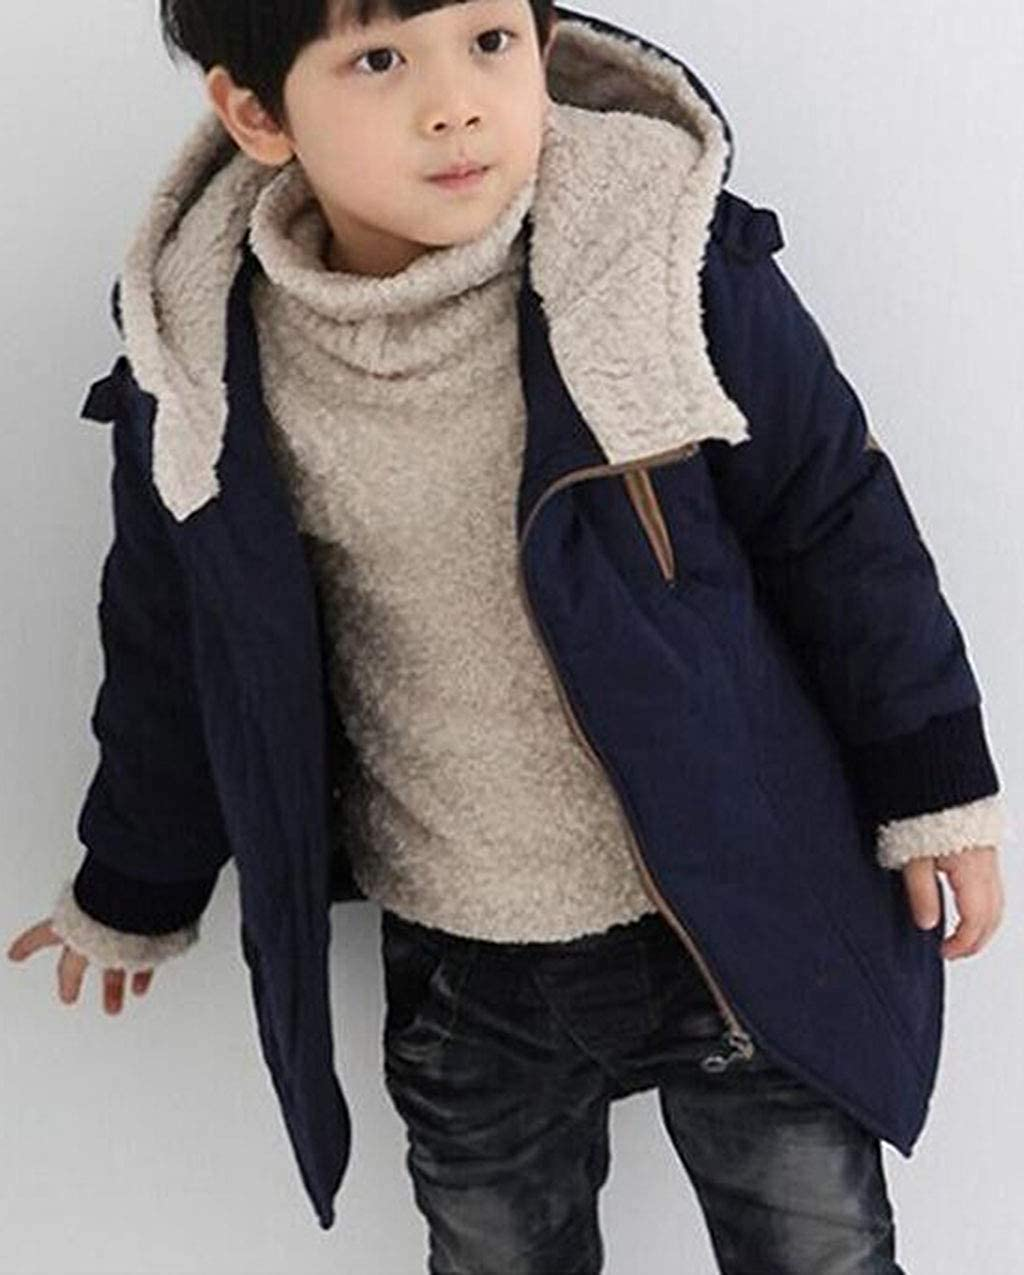 Reaowazo Coat Winter Coats for Boys Fleece Down Jackets Kids Thick Parka with Hooded